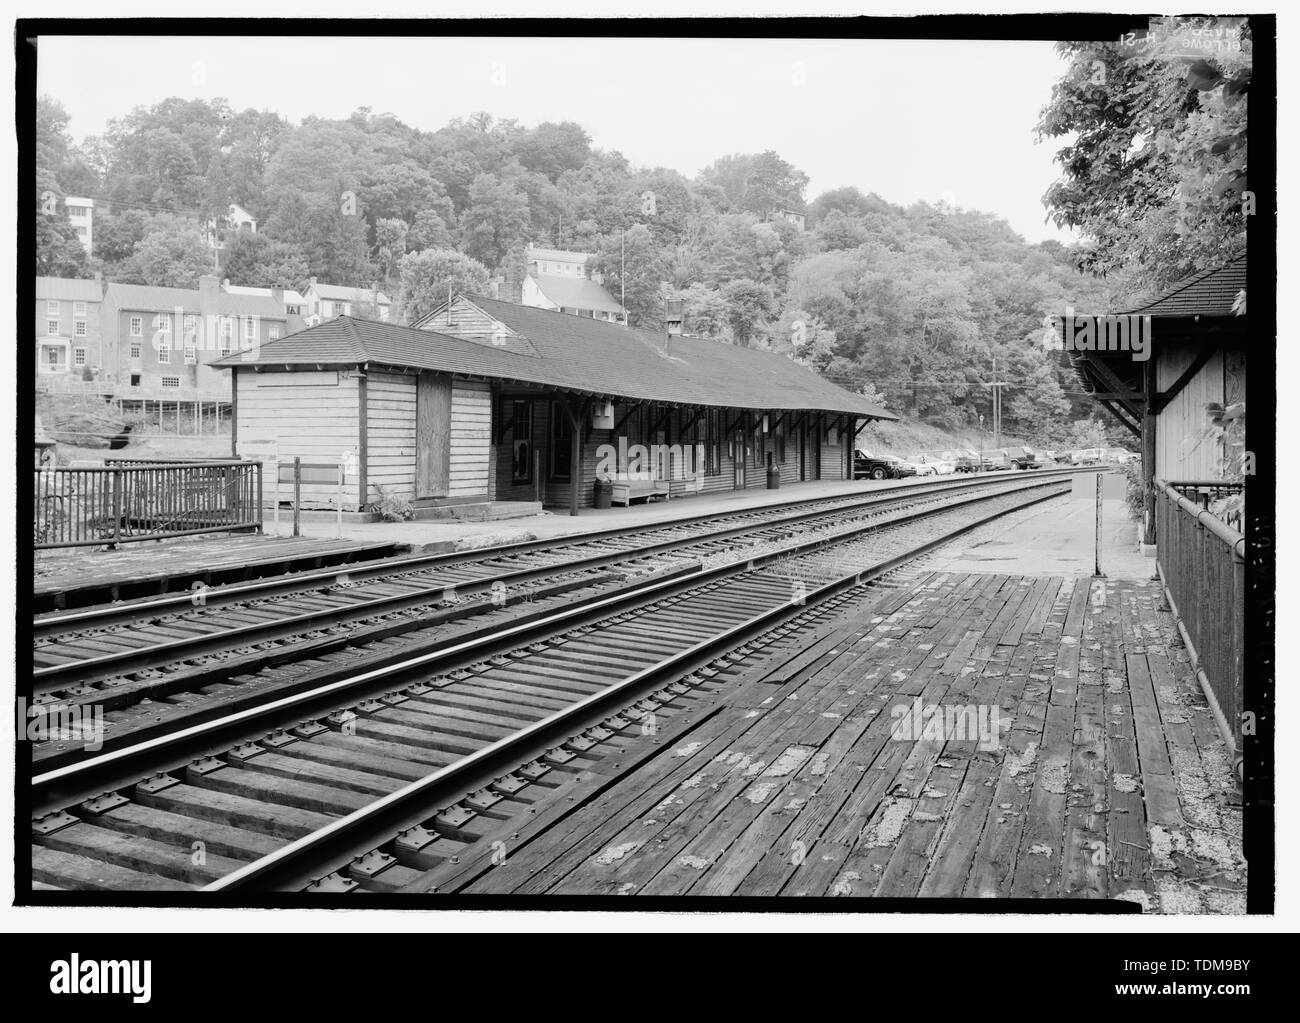 PERSPECTIVE VIEW OF STATION, LOOKING W  - Baltimore and Ohio